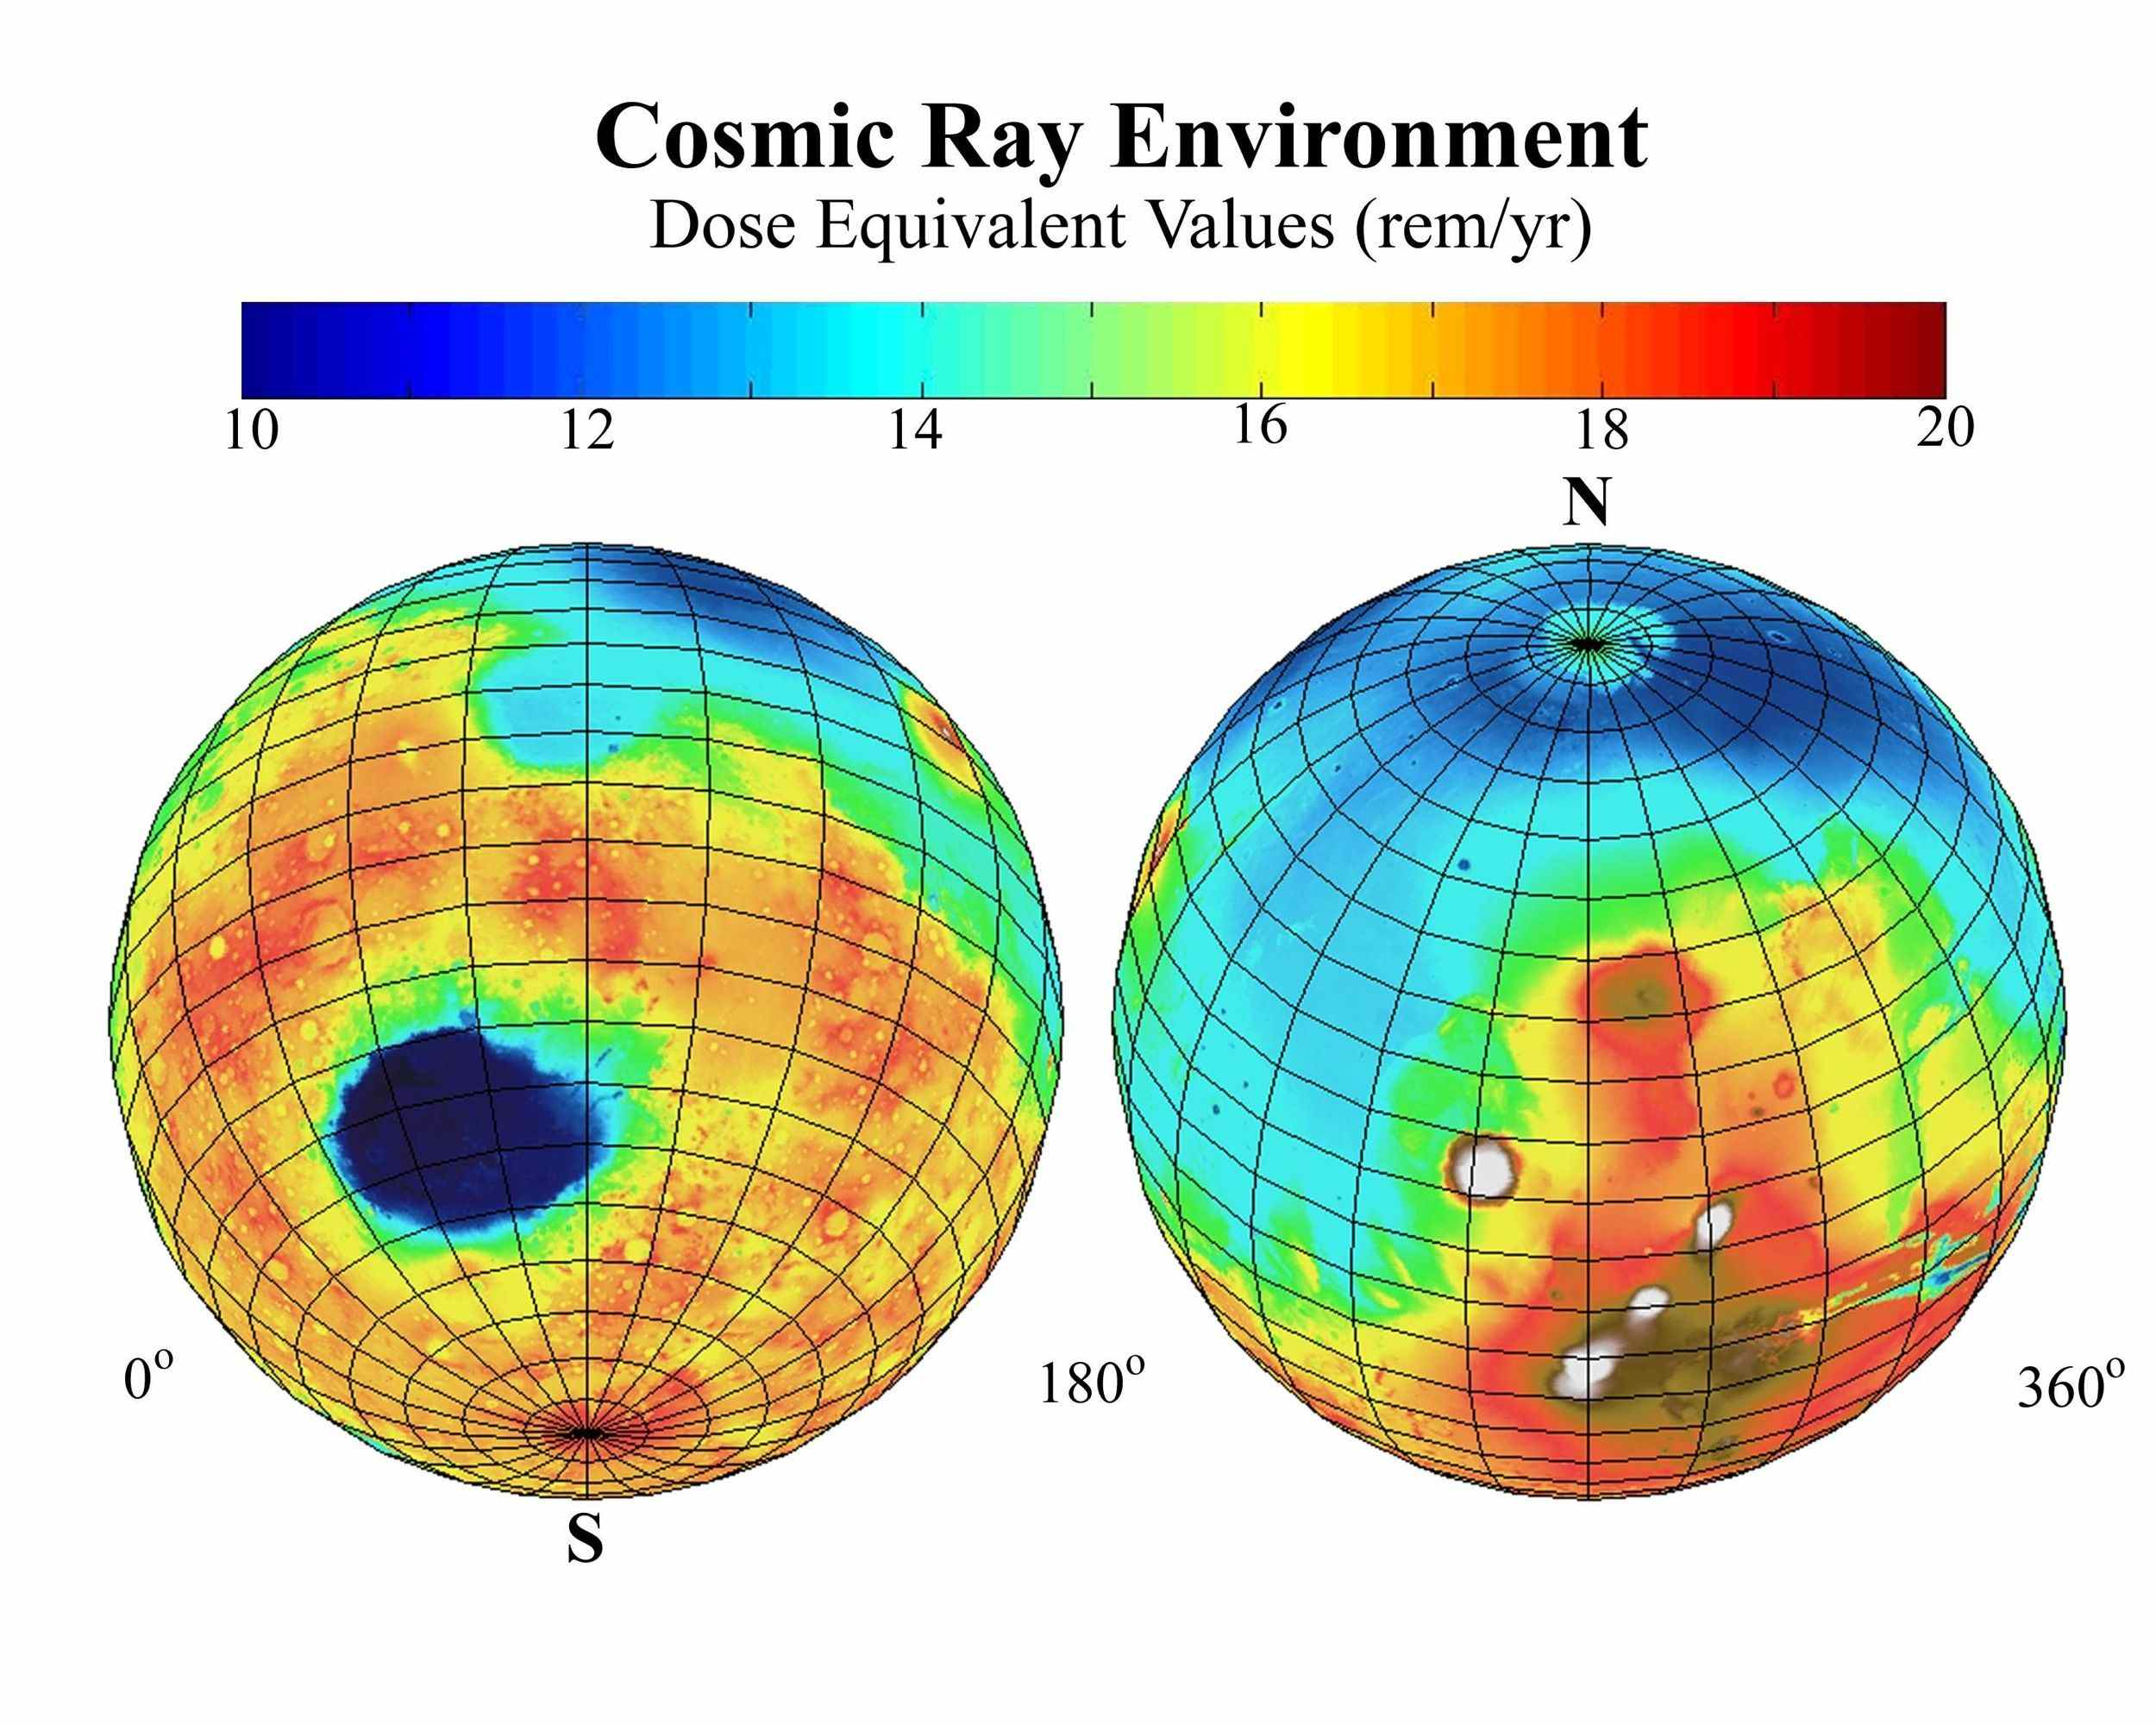 This global map of Mars, based on data from NASA's Mars Odyssey, shows the estimated radiation dosages from cosmic rays reaching the surface, a serious health concern for any future human exploration of the planet.